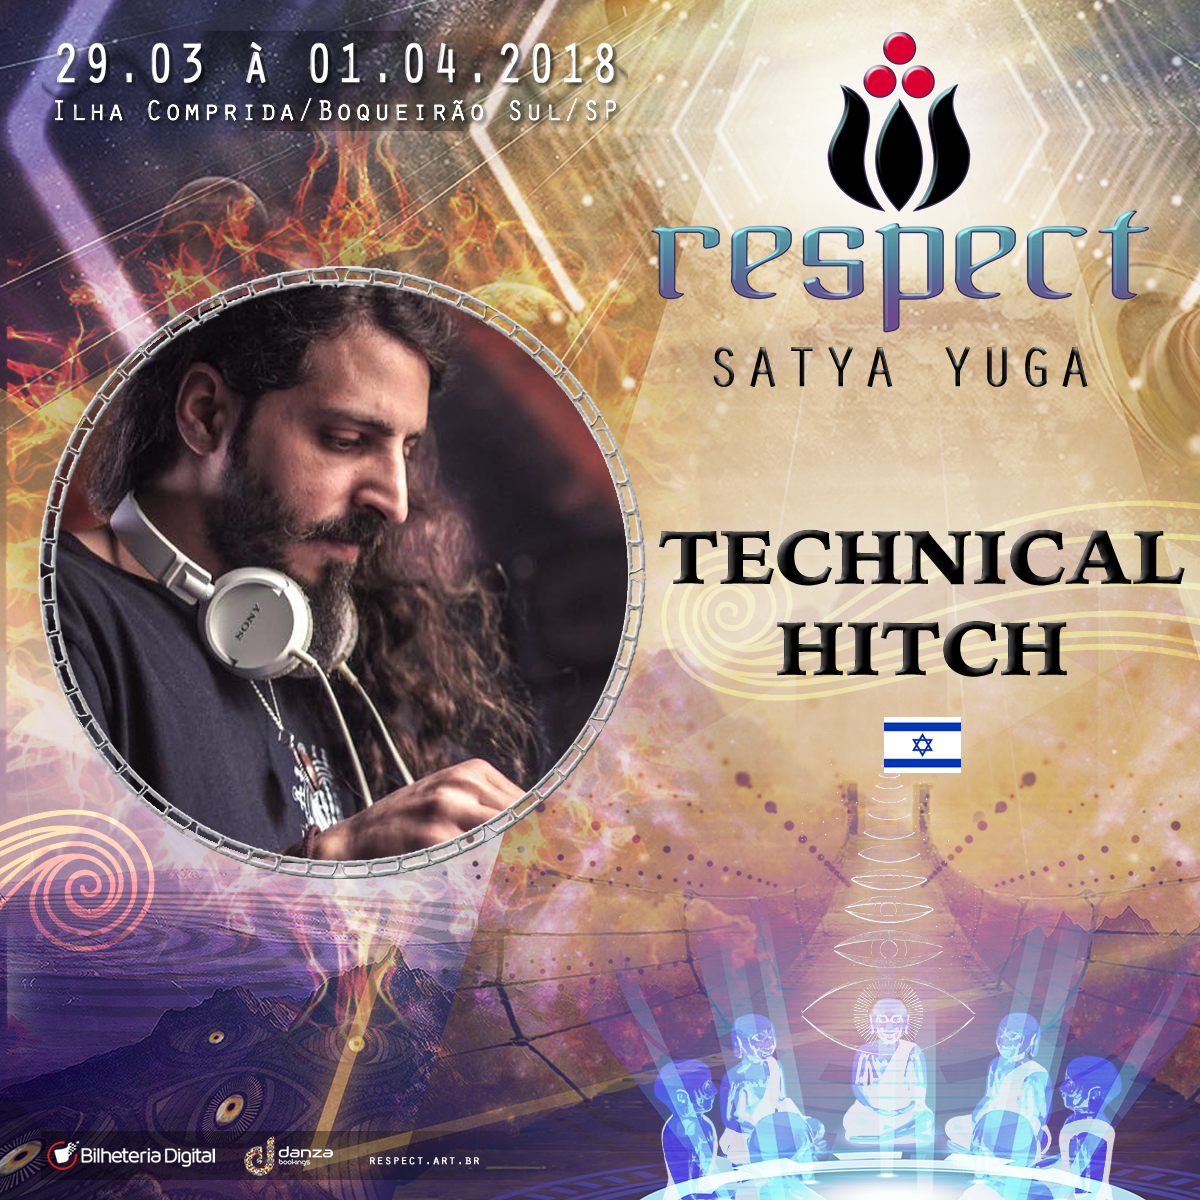 Technical Hitch @ Artista Confirmado Respect Festival 2018